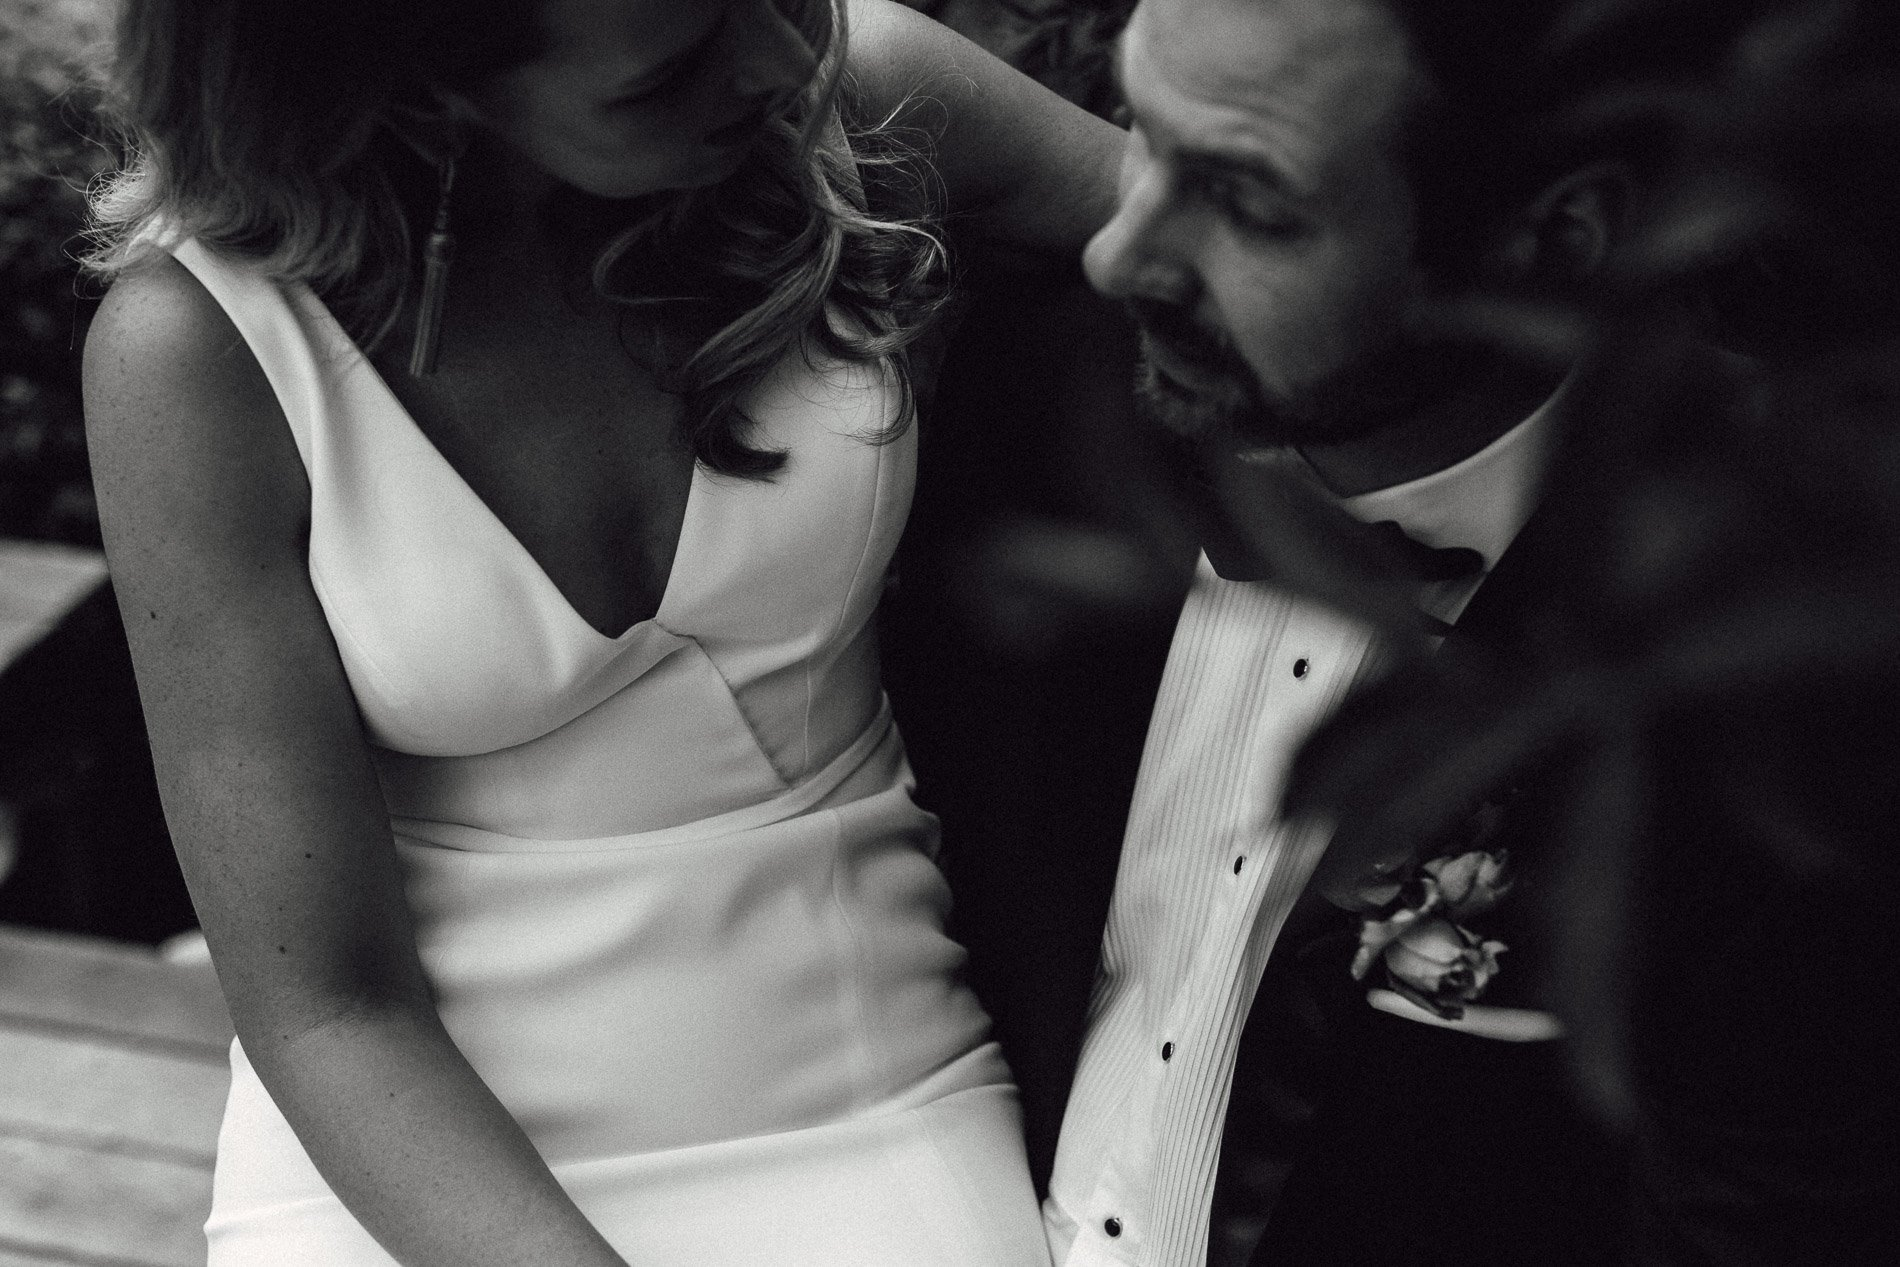 Fern and stone photography epicurean house bride and groom